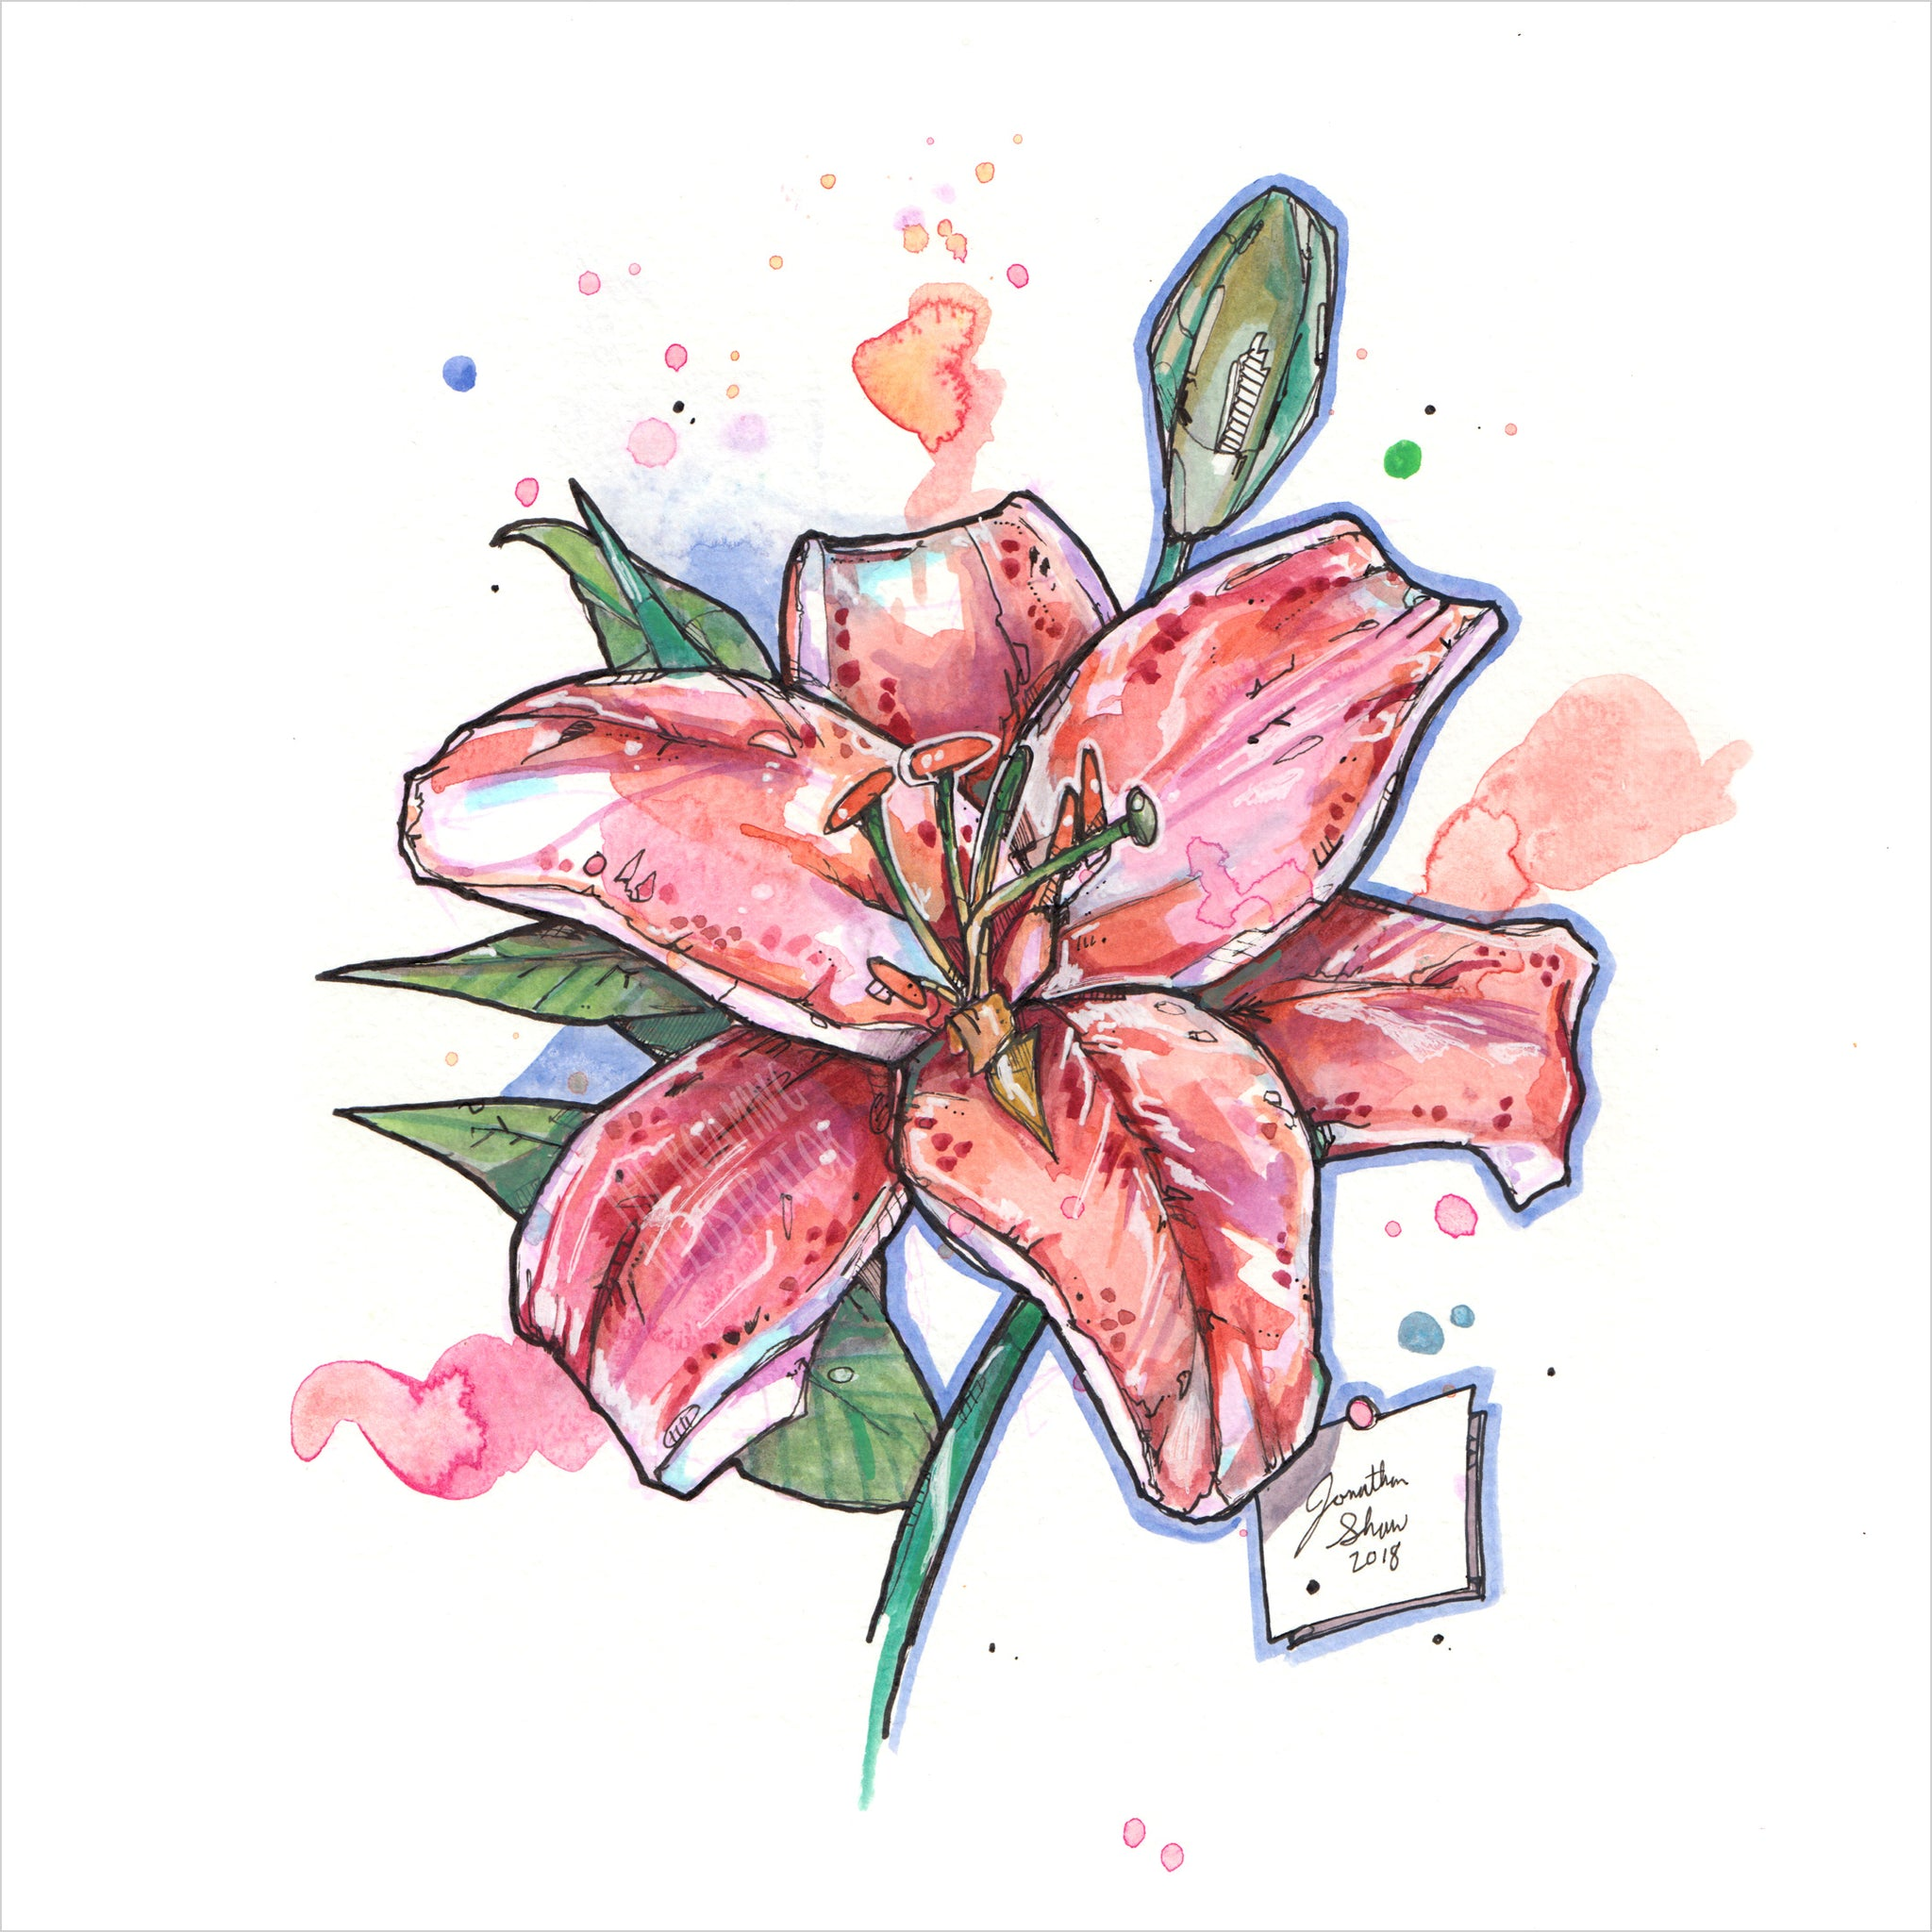 """Red Lily"" - Original 8x10 Illustration (SOLD)"